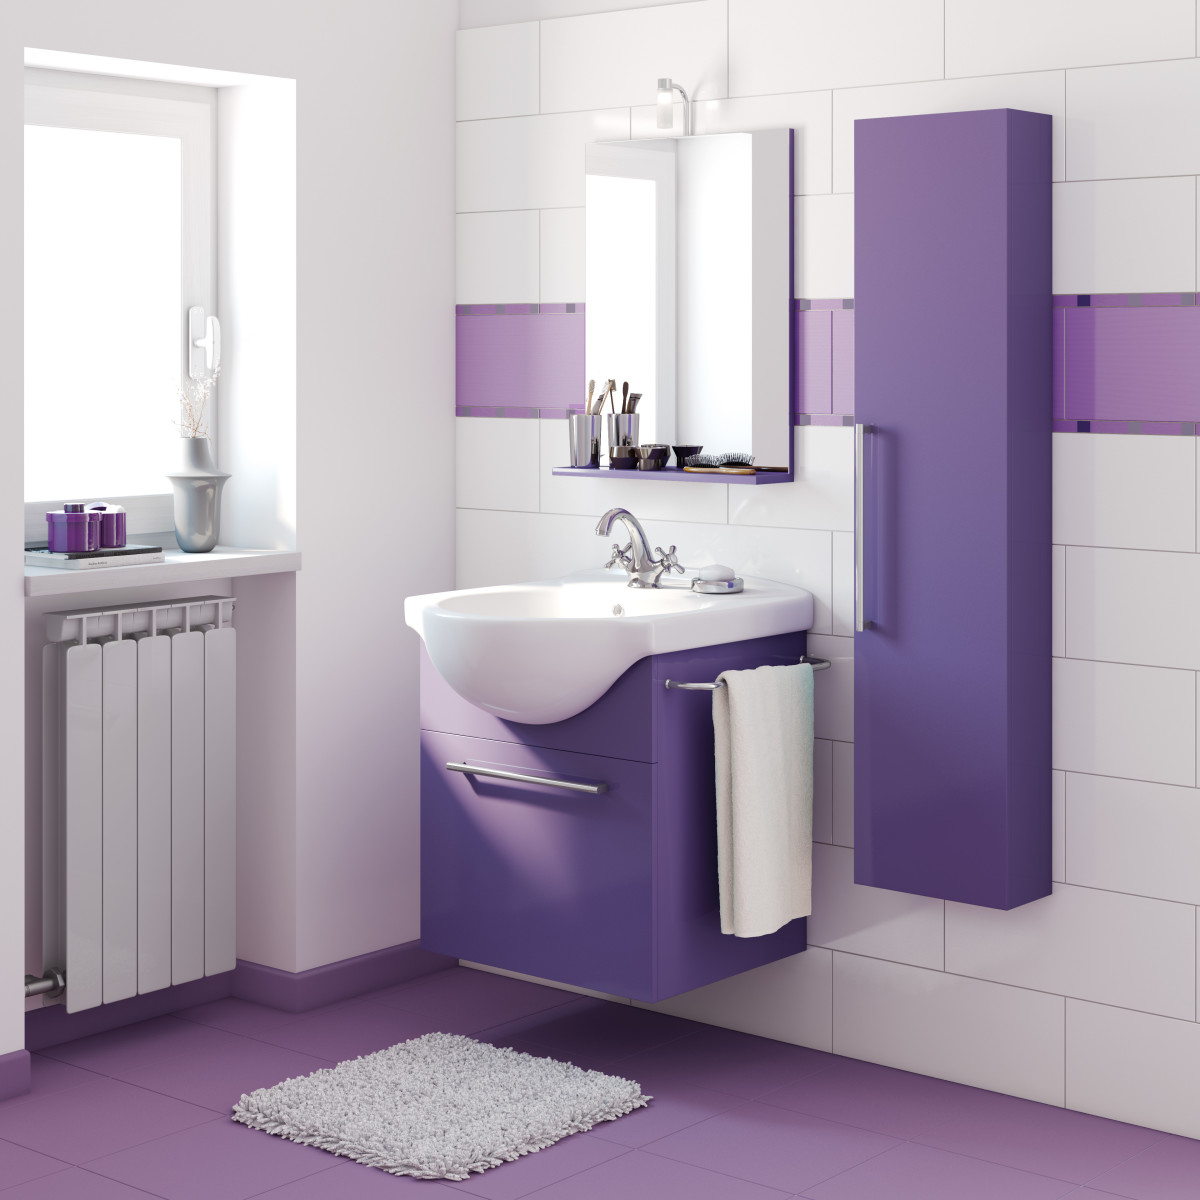 Finest emejing mobili bagno colorati pictures skilifts us skilifts us with bagni colorati moderni - Pensili per bagno leroy merlin ...